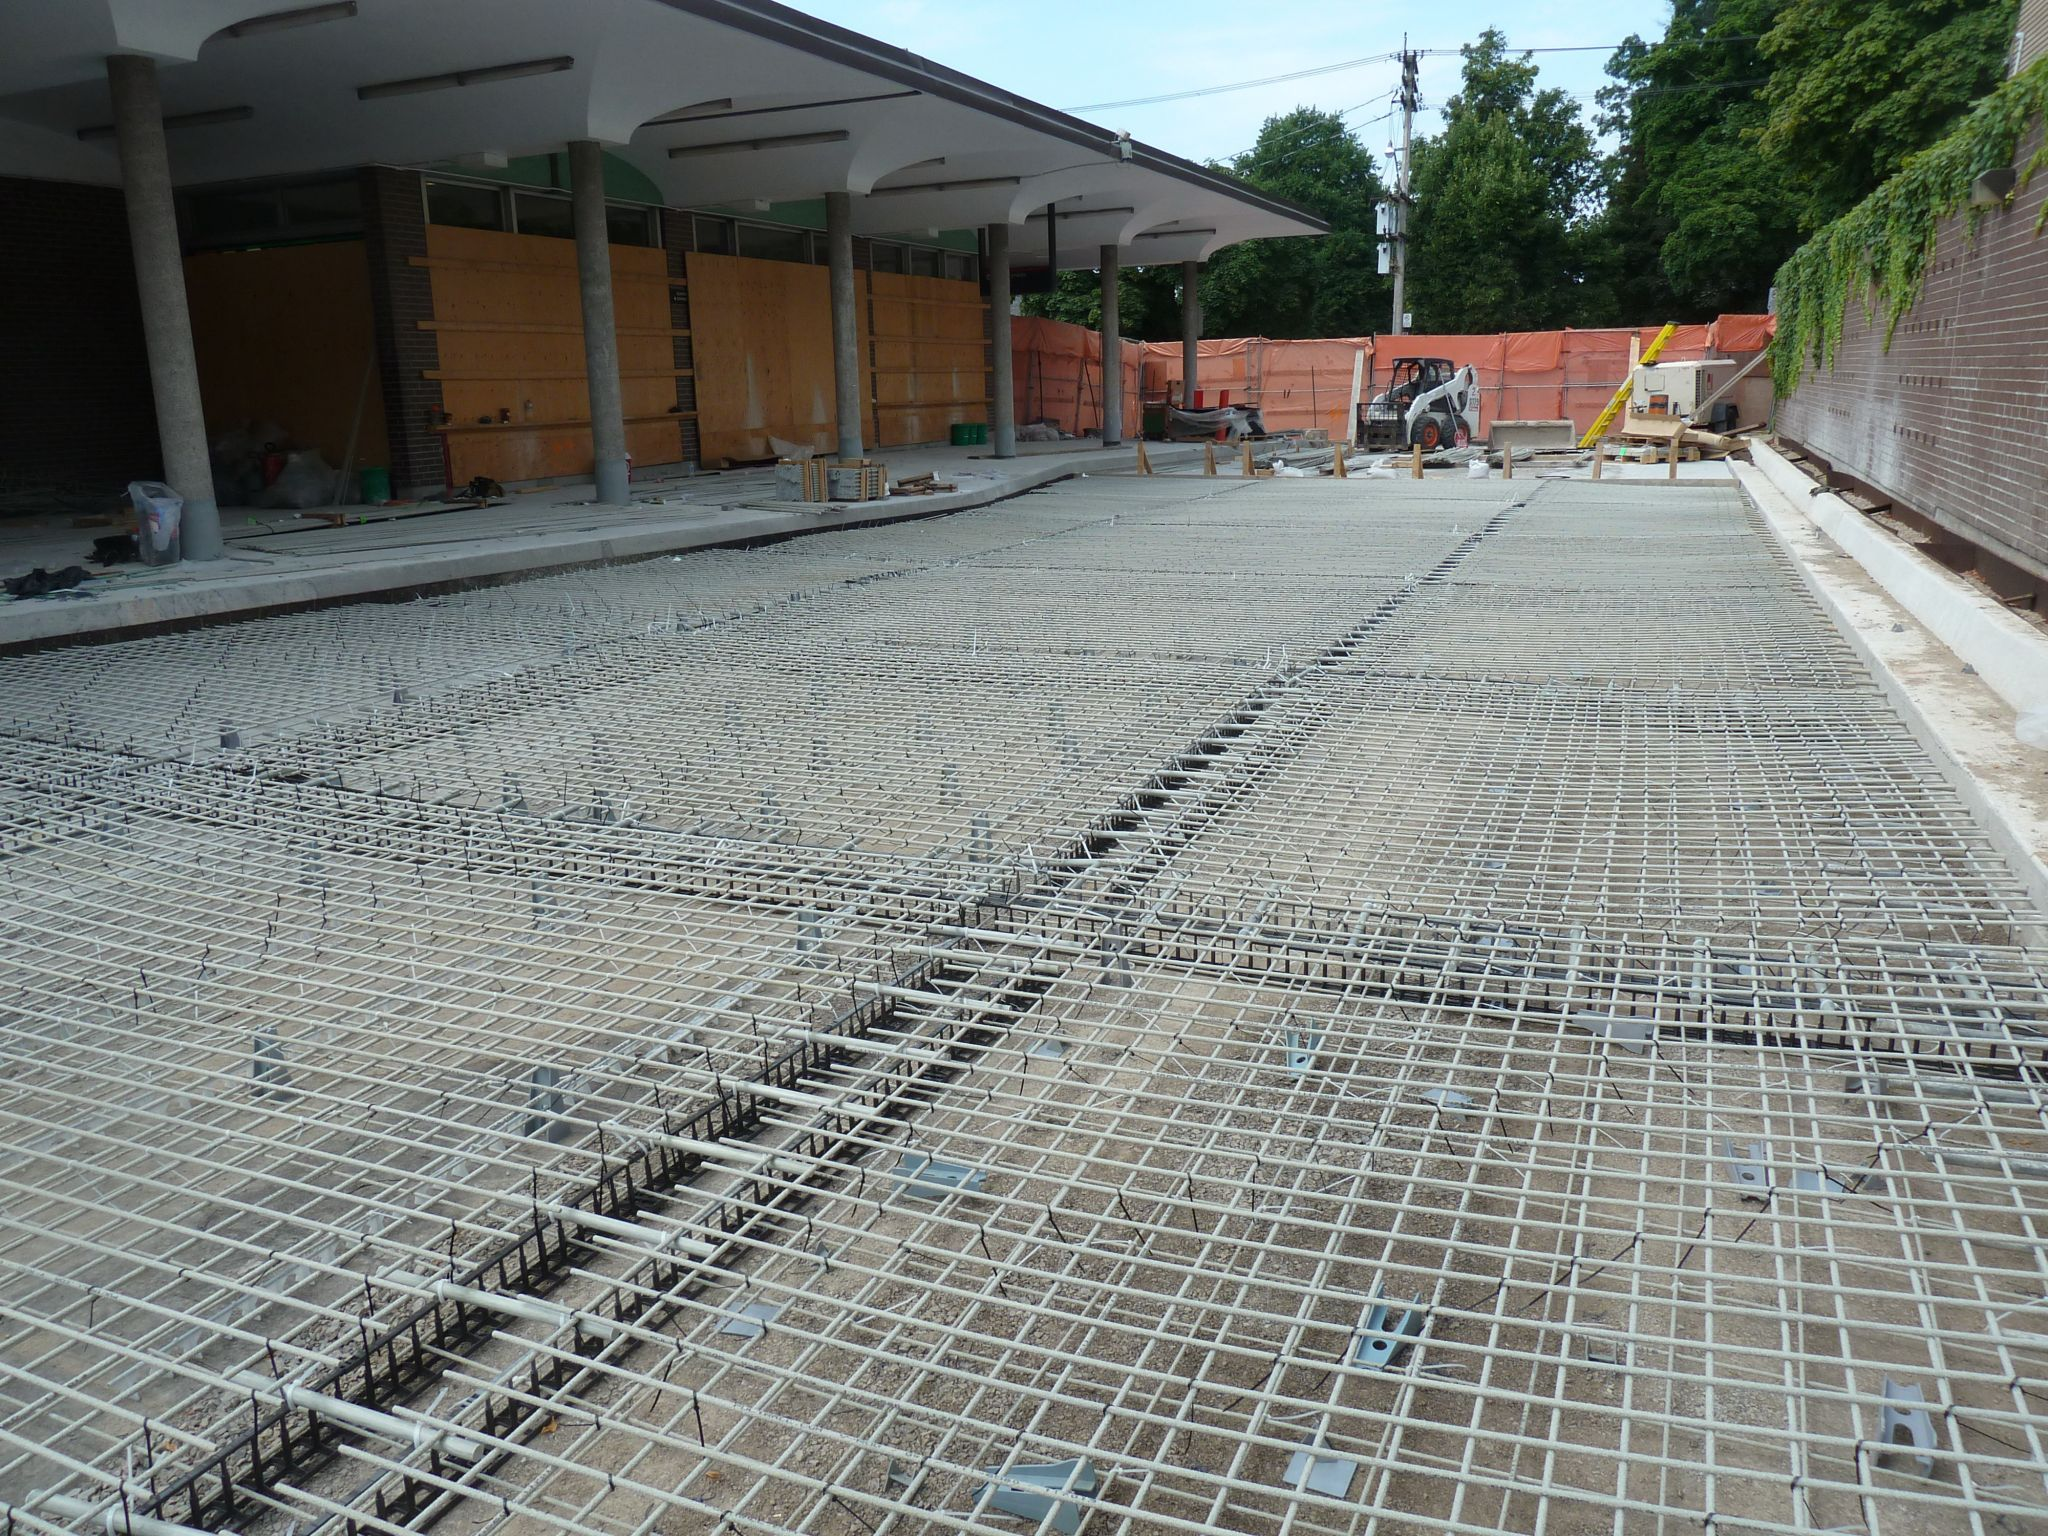 The bus driveway pavement used GFRP bars and dowels during installation.